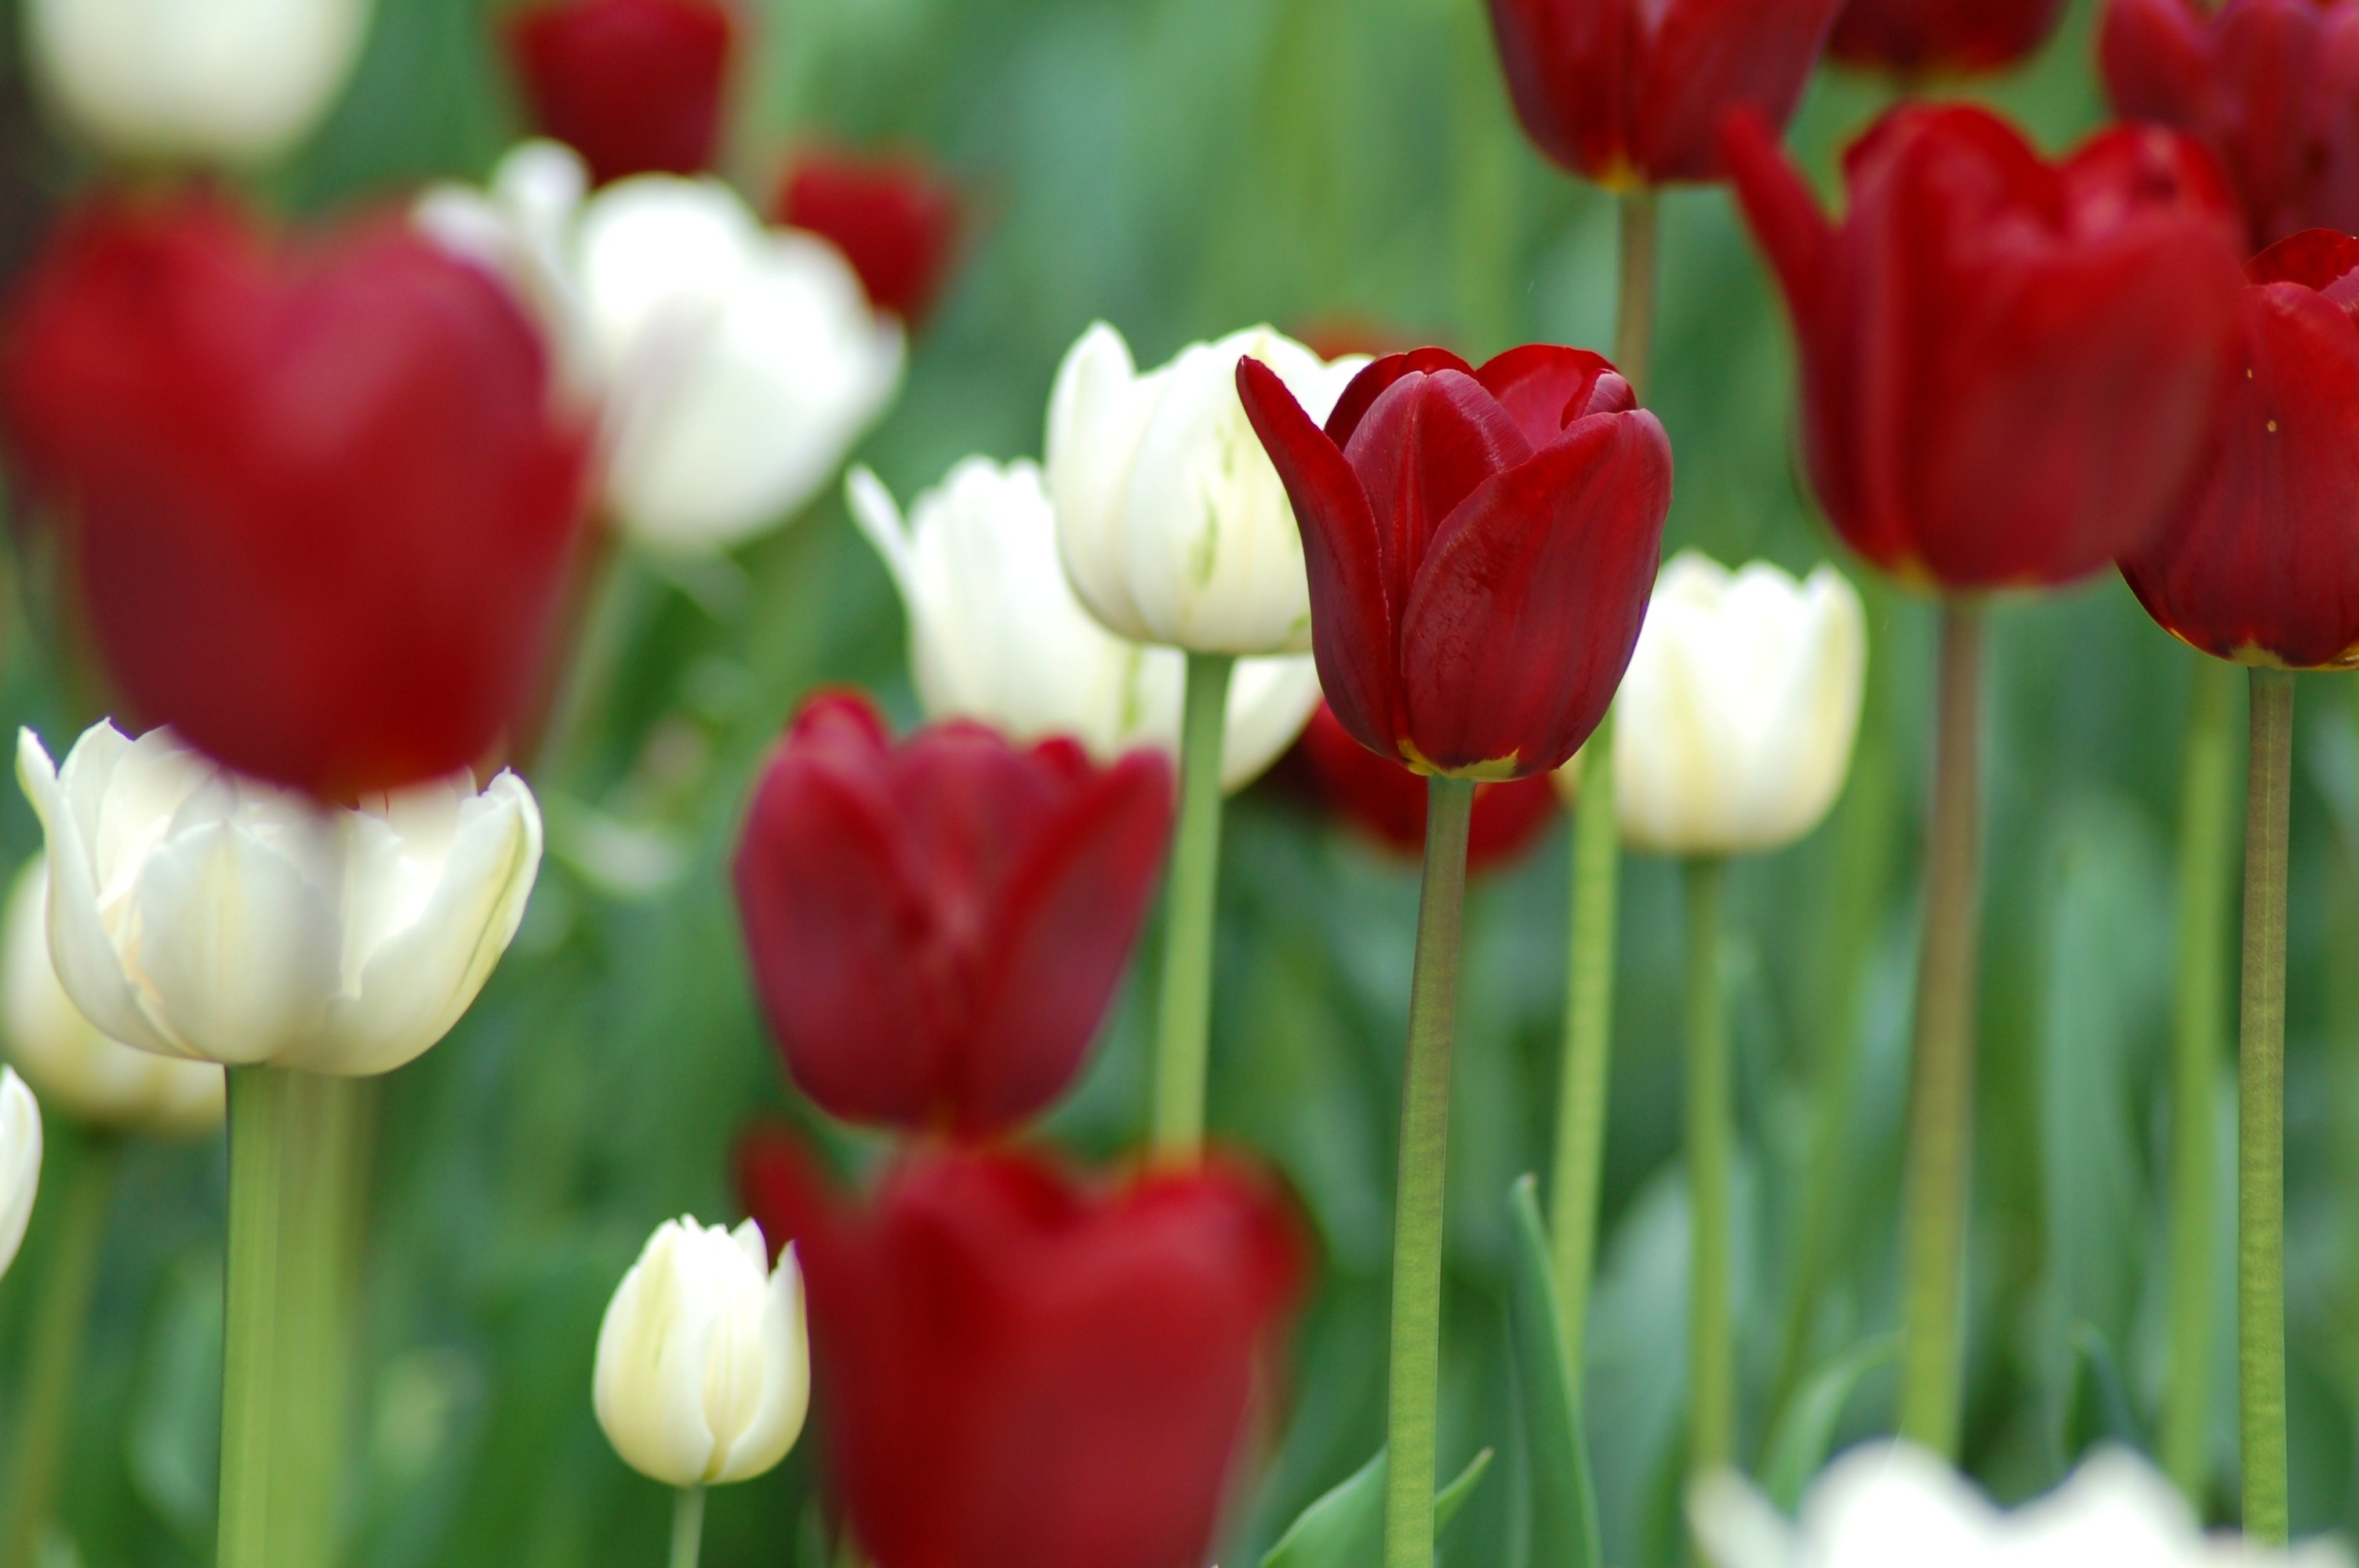 Red and white tulips, pictured here, will bloom in Fernie's EcoGarden this spring.